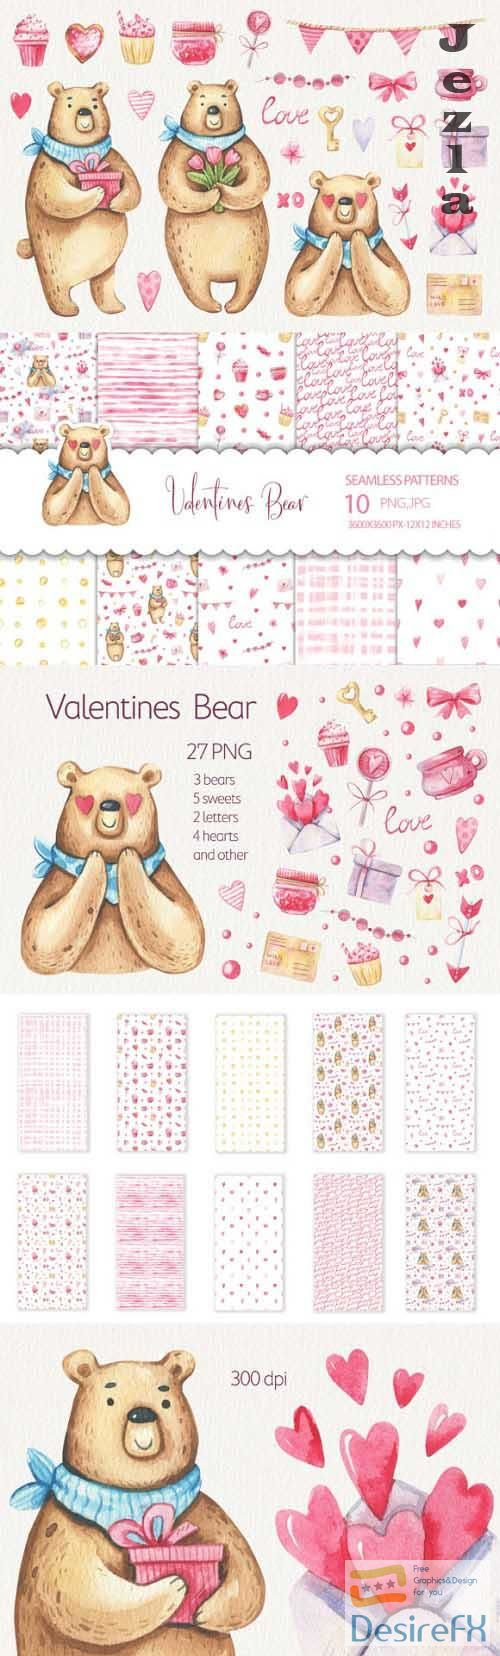 Watercolor Valentines Day Clipart and Seamless Patterns